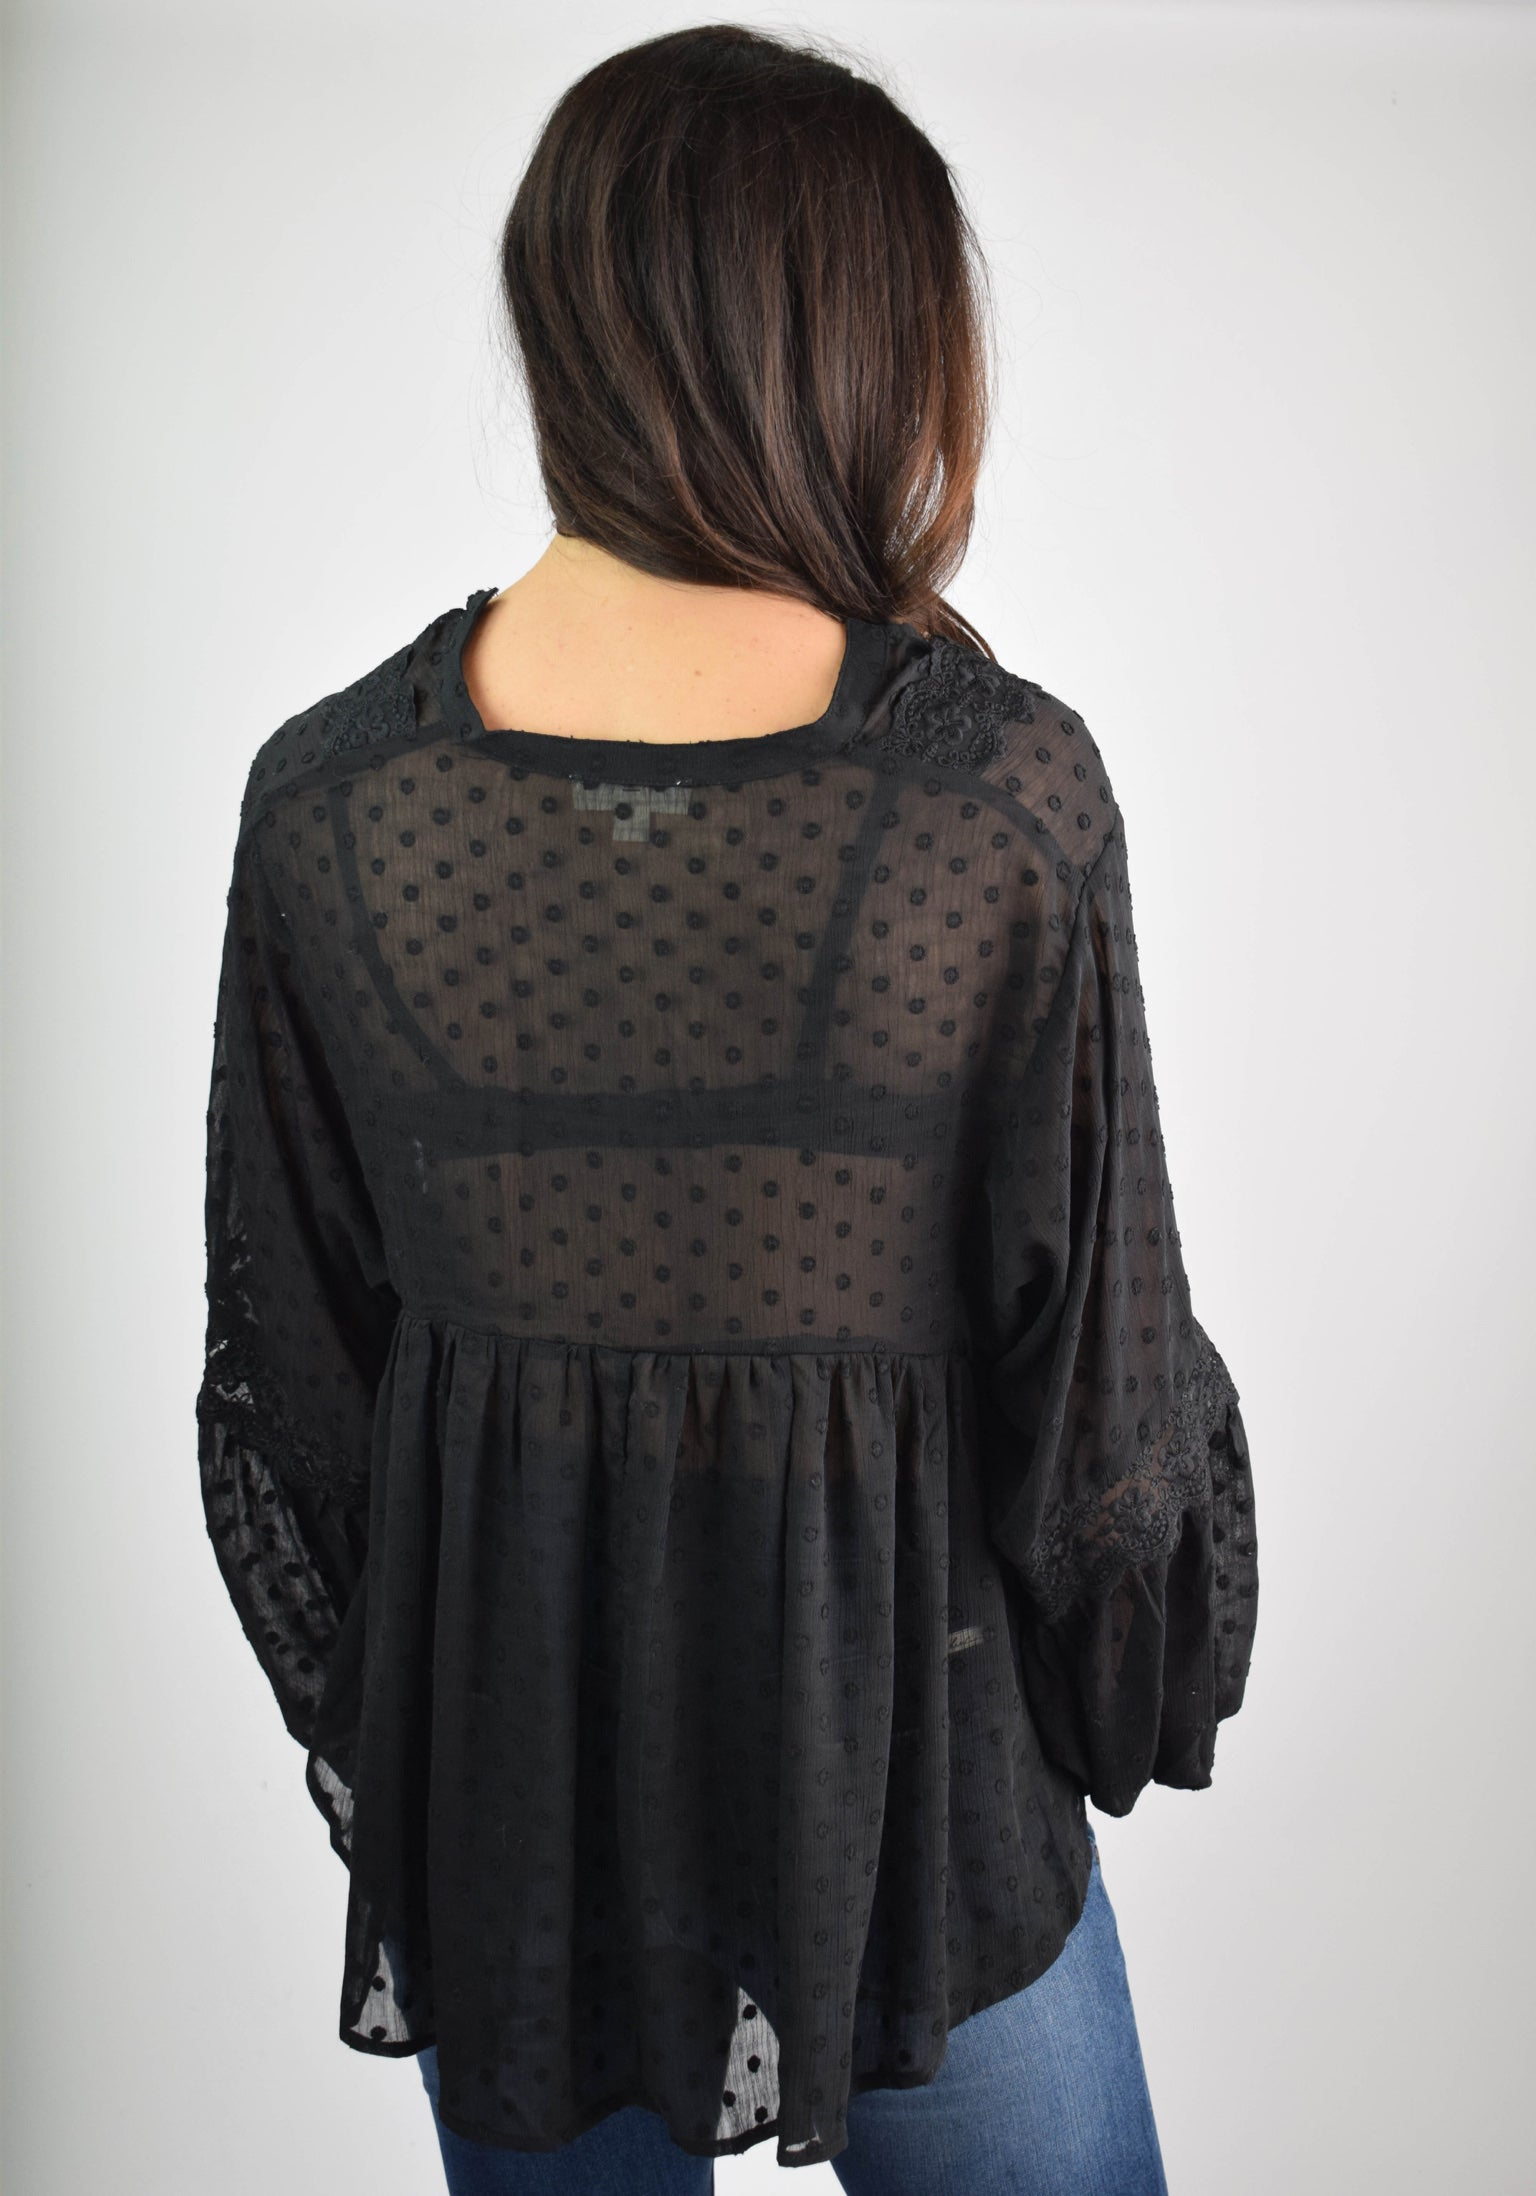 Worth Waiting For Black Sheer Blouse